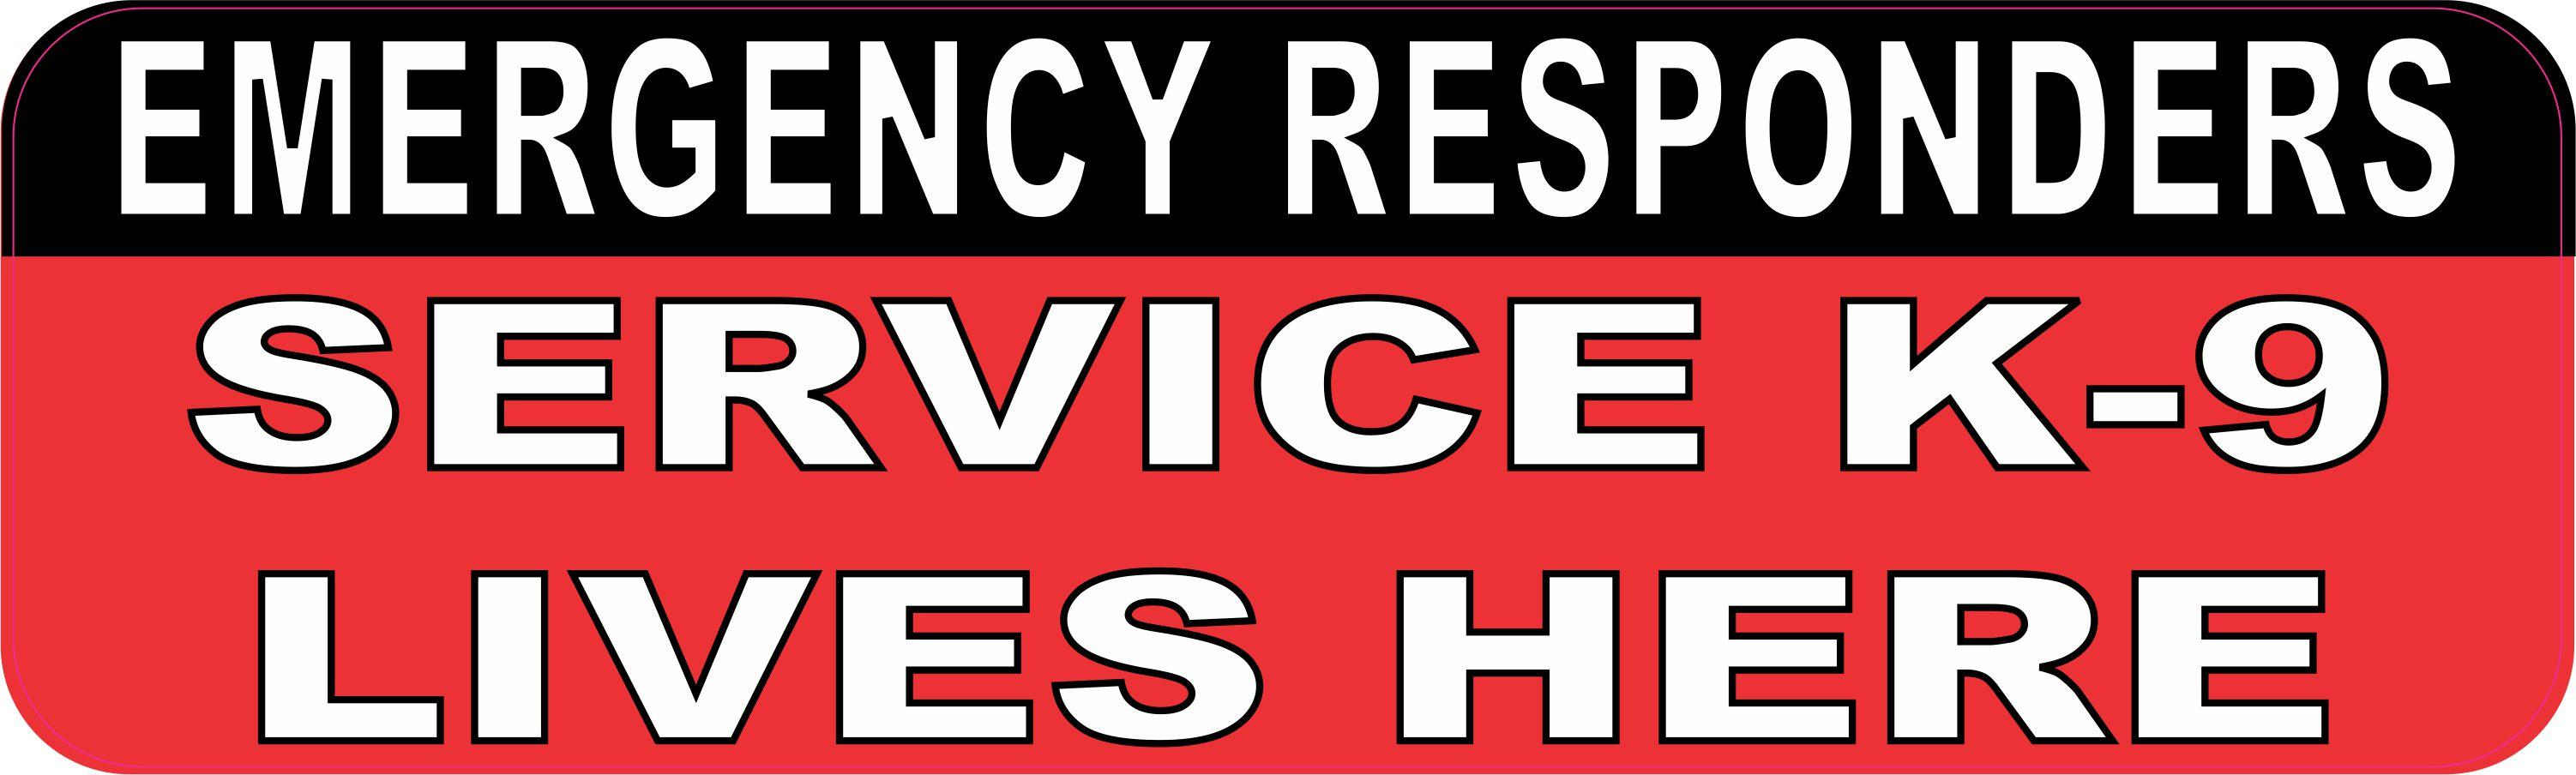 10in x 3in emergency responders service k 9 lives here vinyl sticker window decal